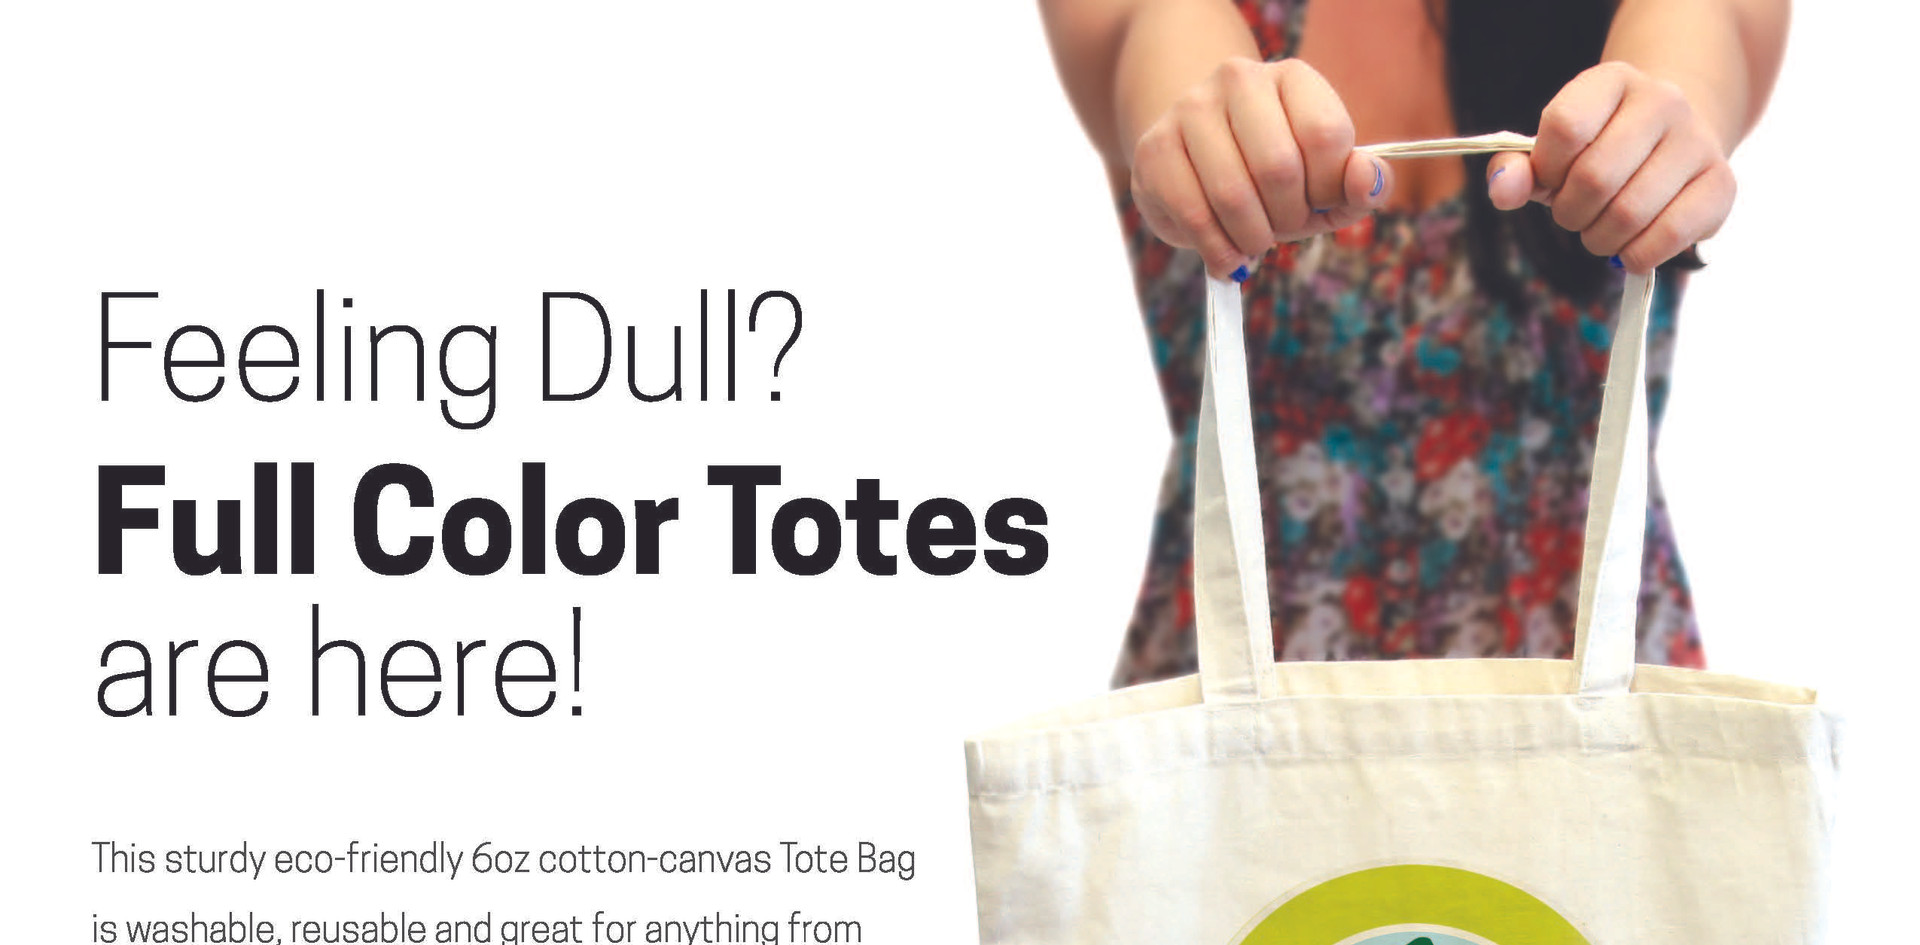 Full Color Totes